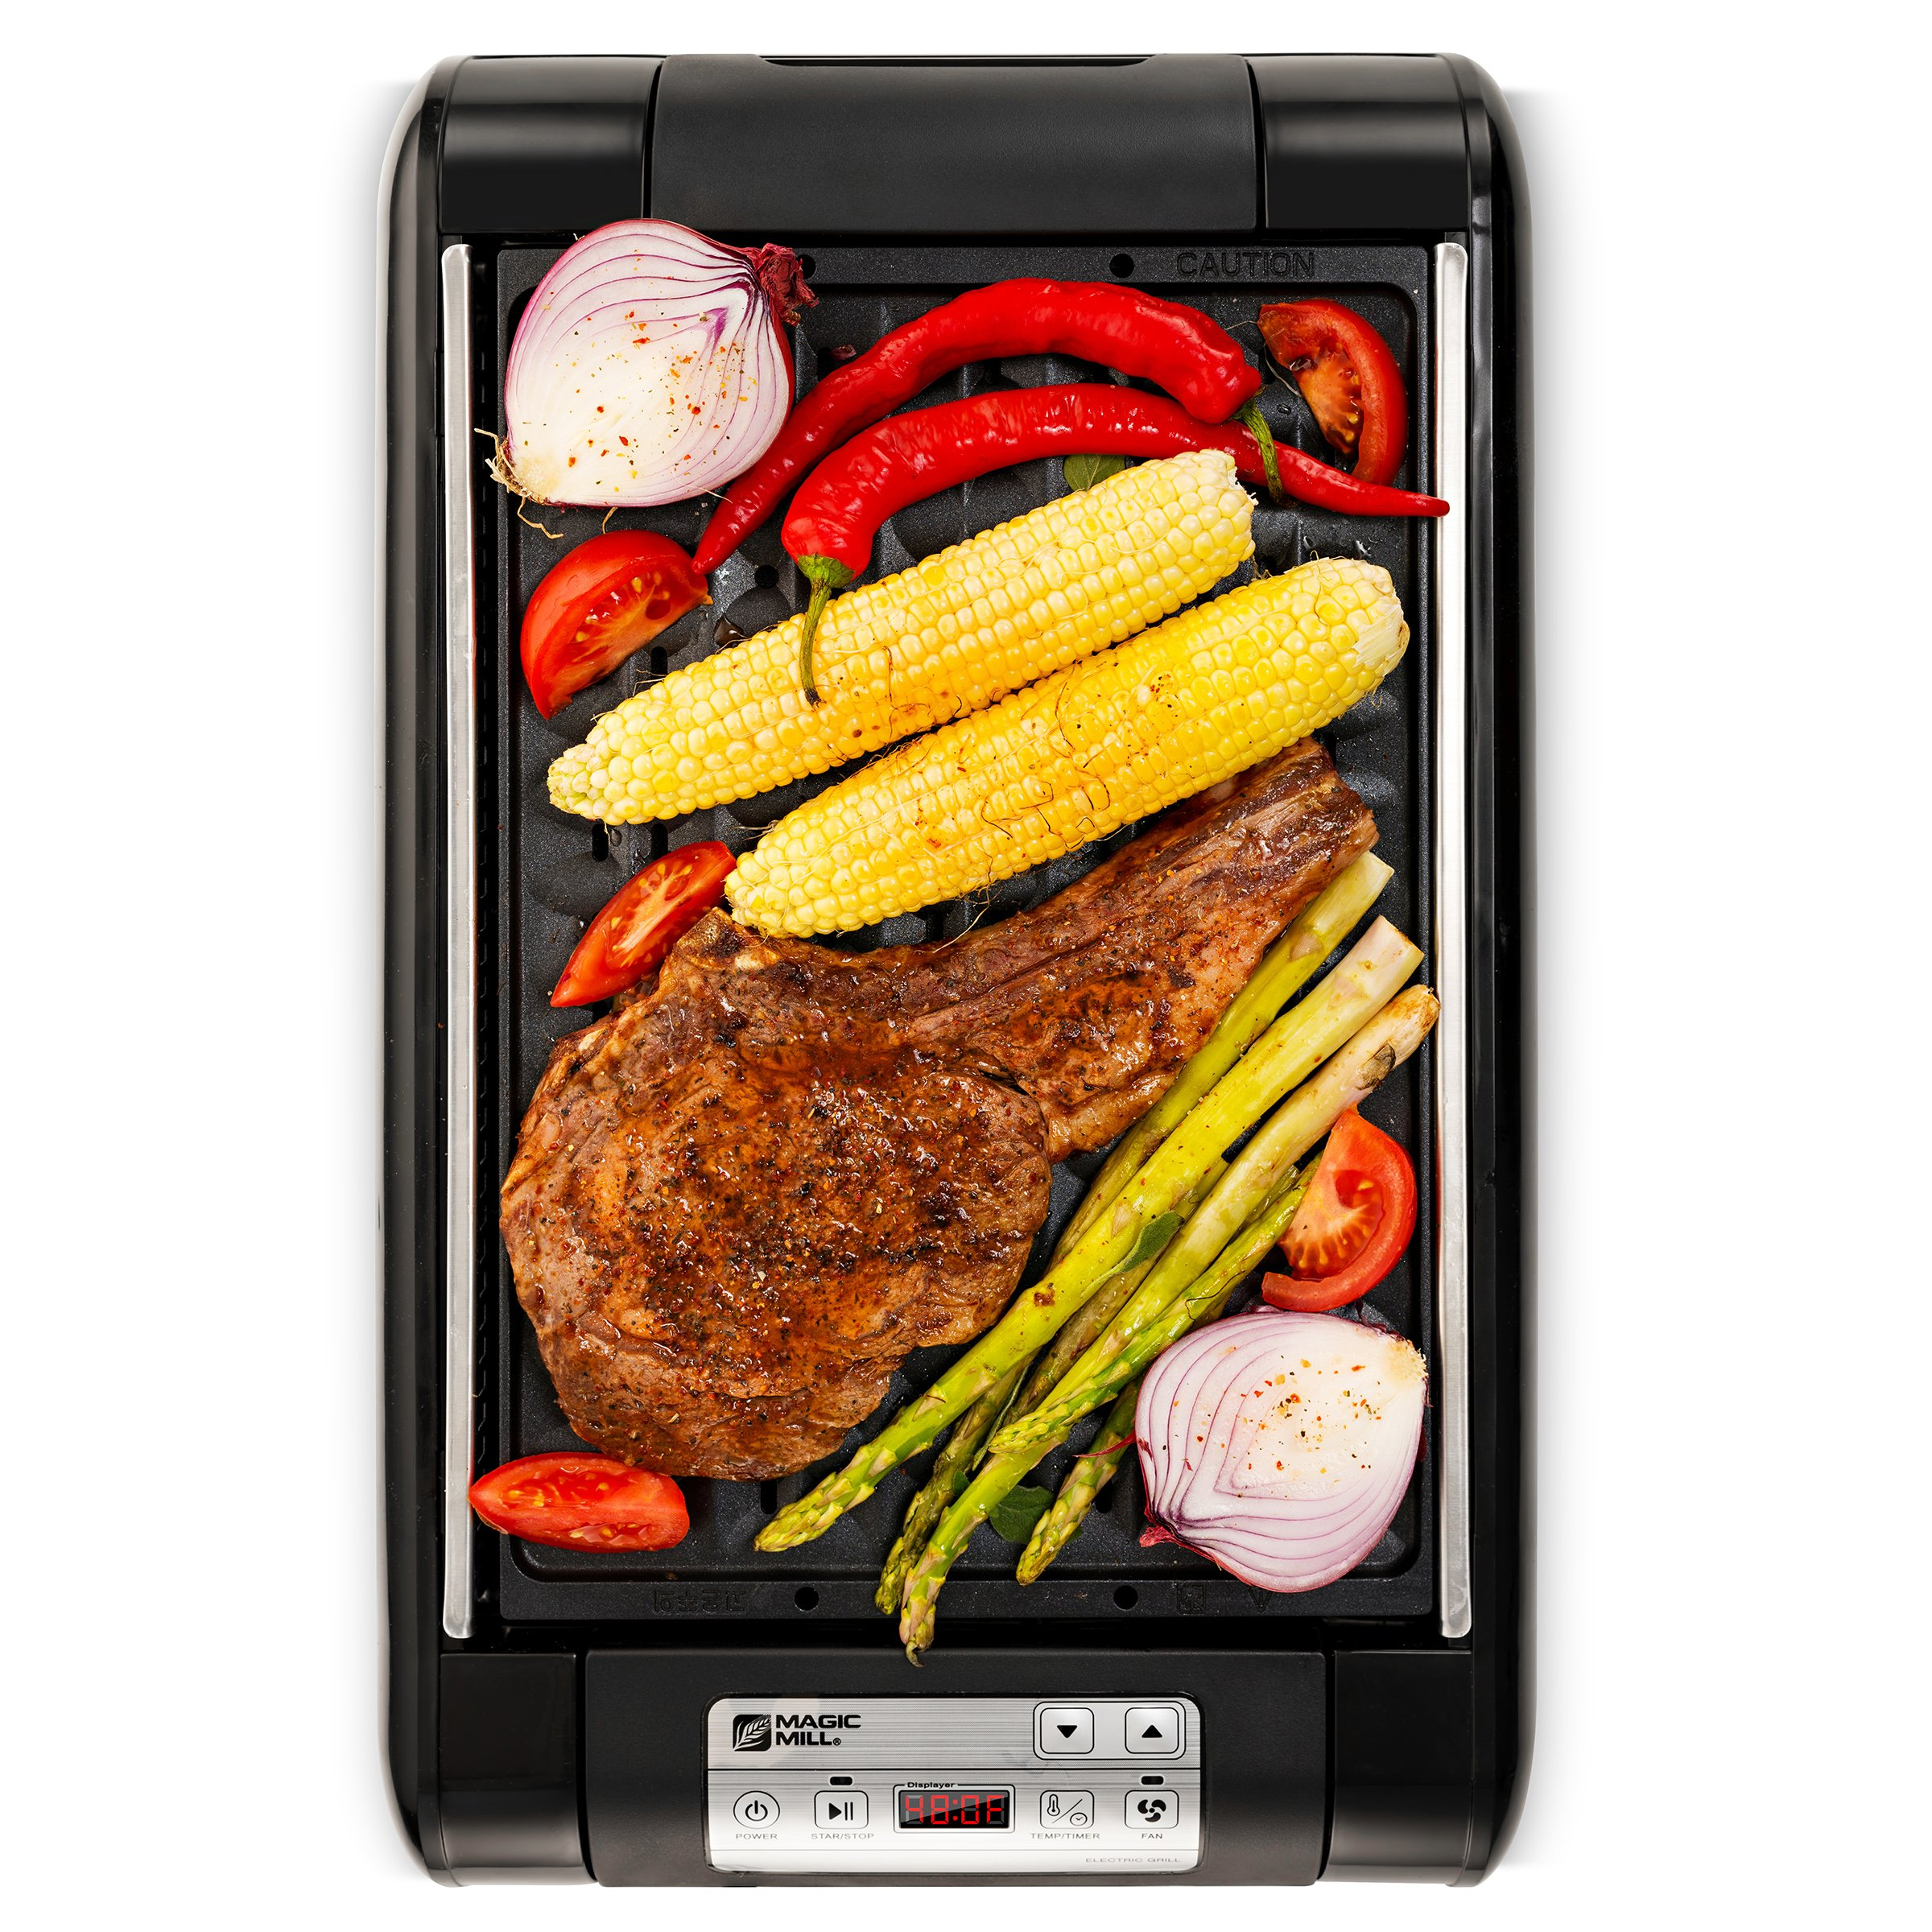 Magic-Mill Electric Smokeless Grill and Griddle Pan for Indoor BBQ in Your kitchen - Digital Temperature Control - Cooking Timer - Built in Fan for Smokeless Grilling by magic mill